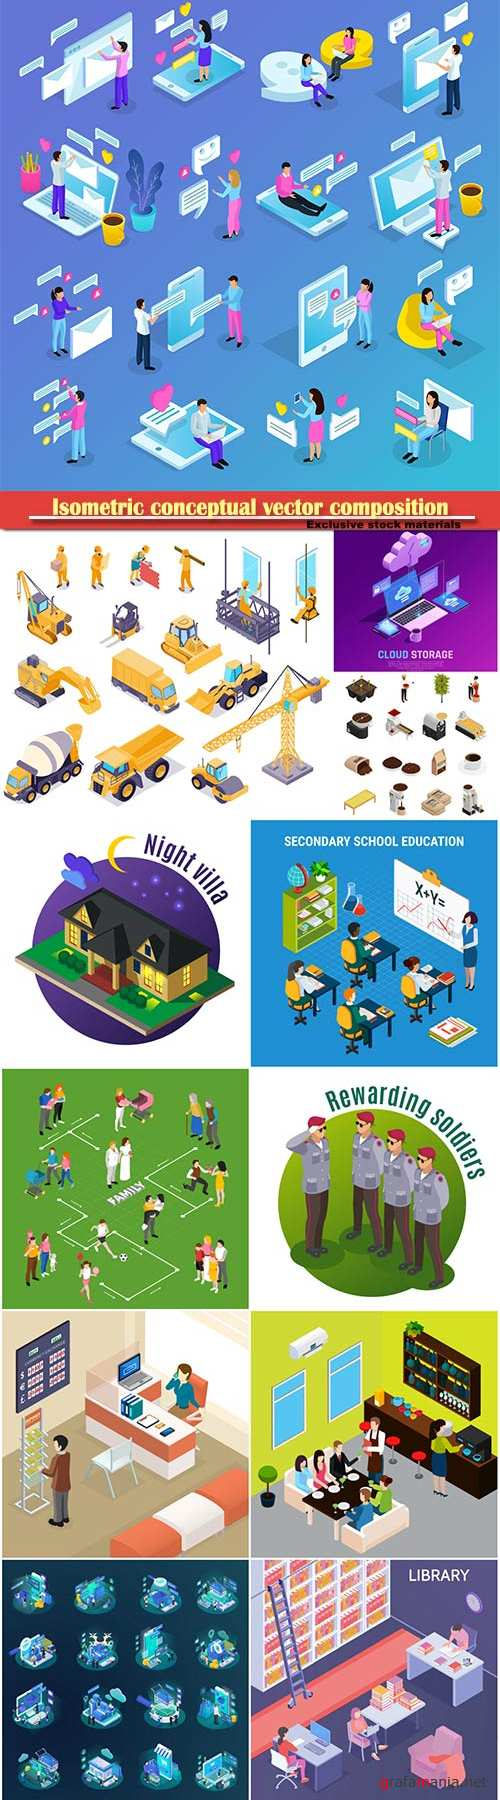 Isometric conceptual vector composition, infographics template # 27